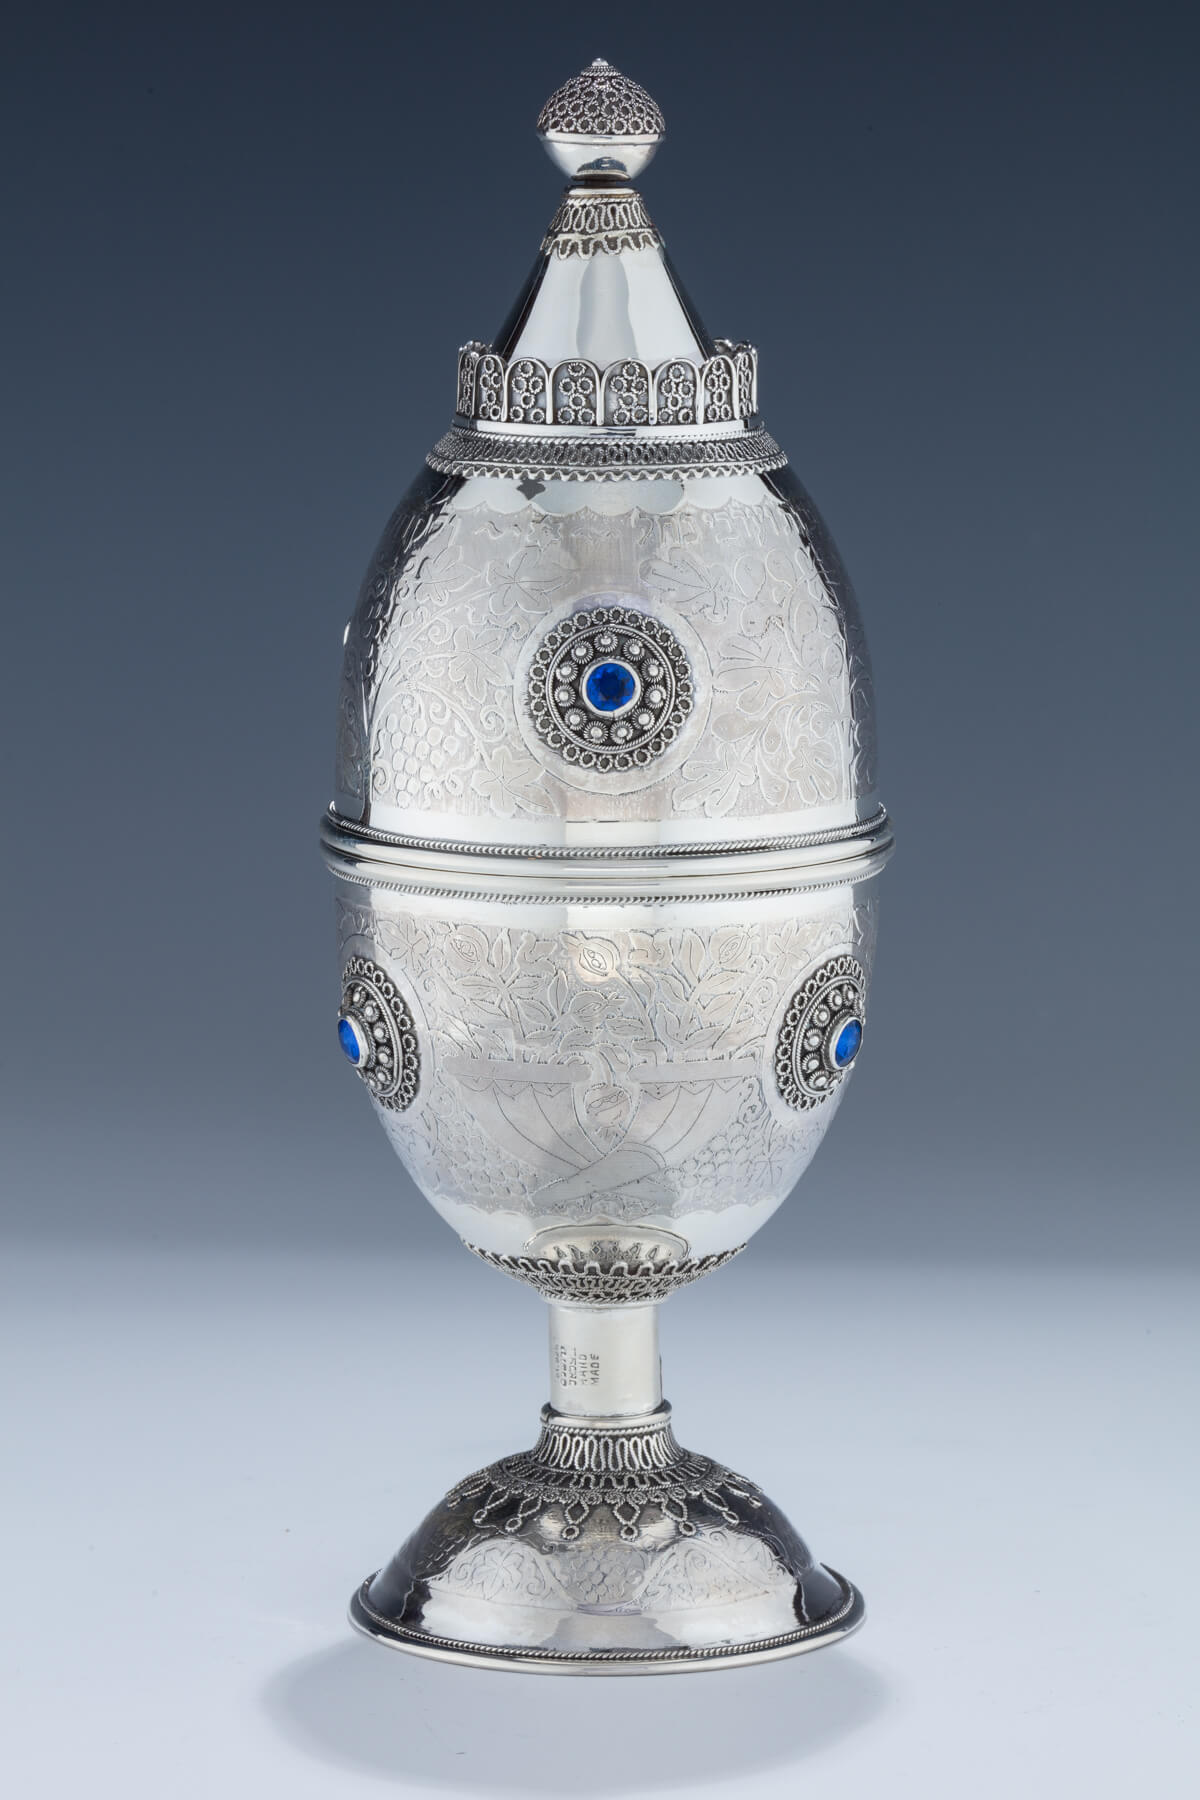 074. A Large Silver Etrog Container by Bezalel